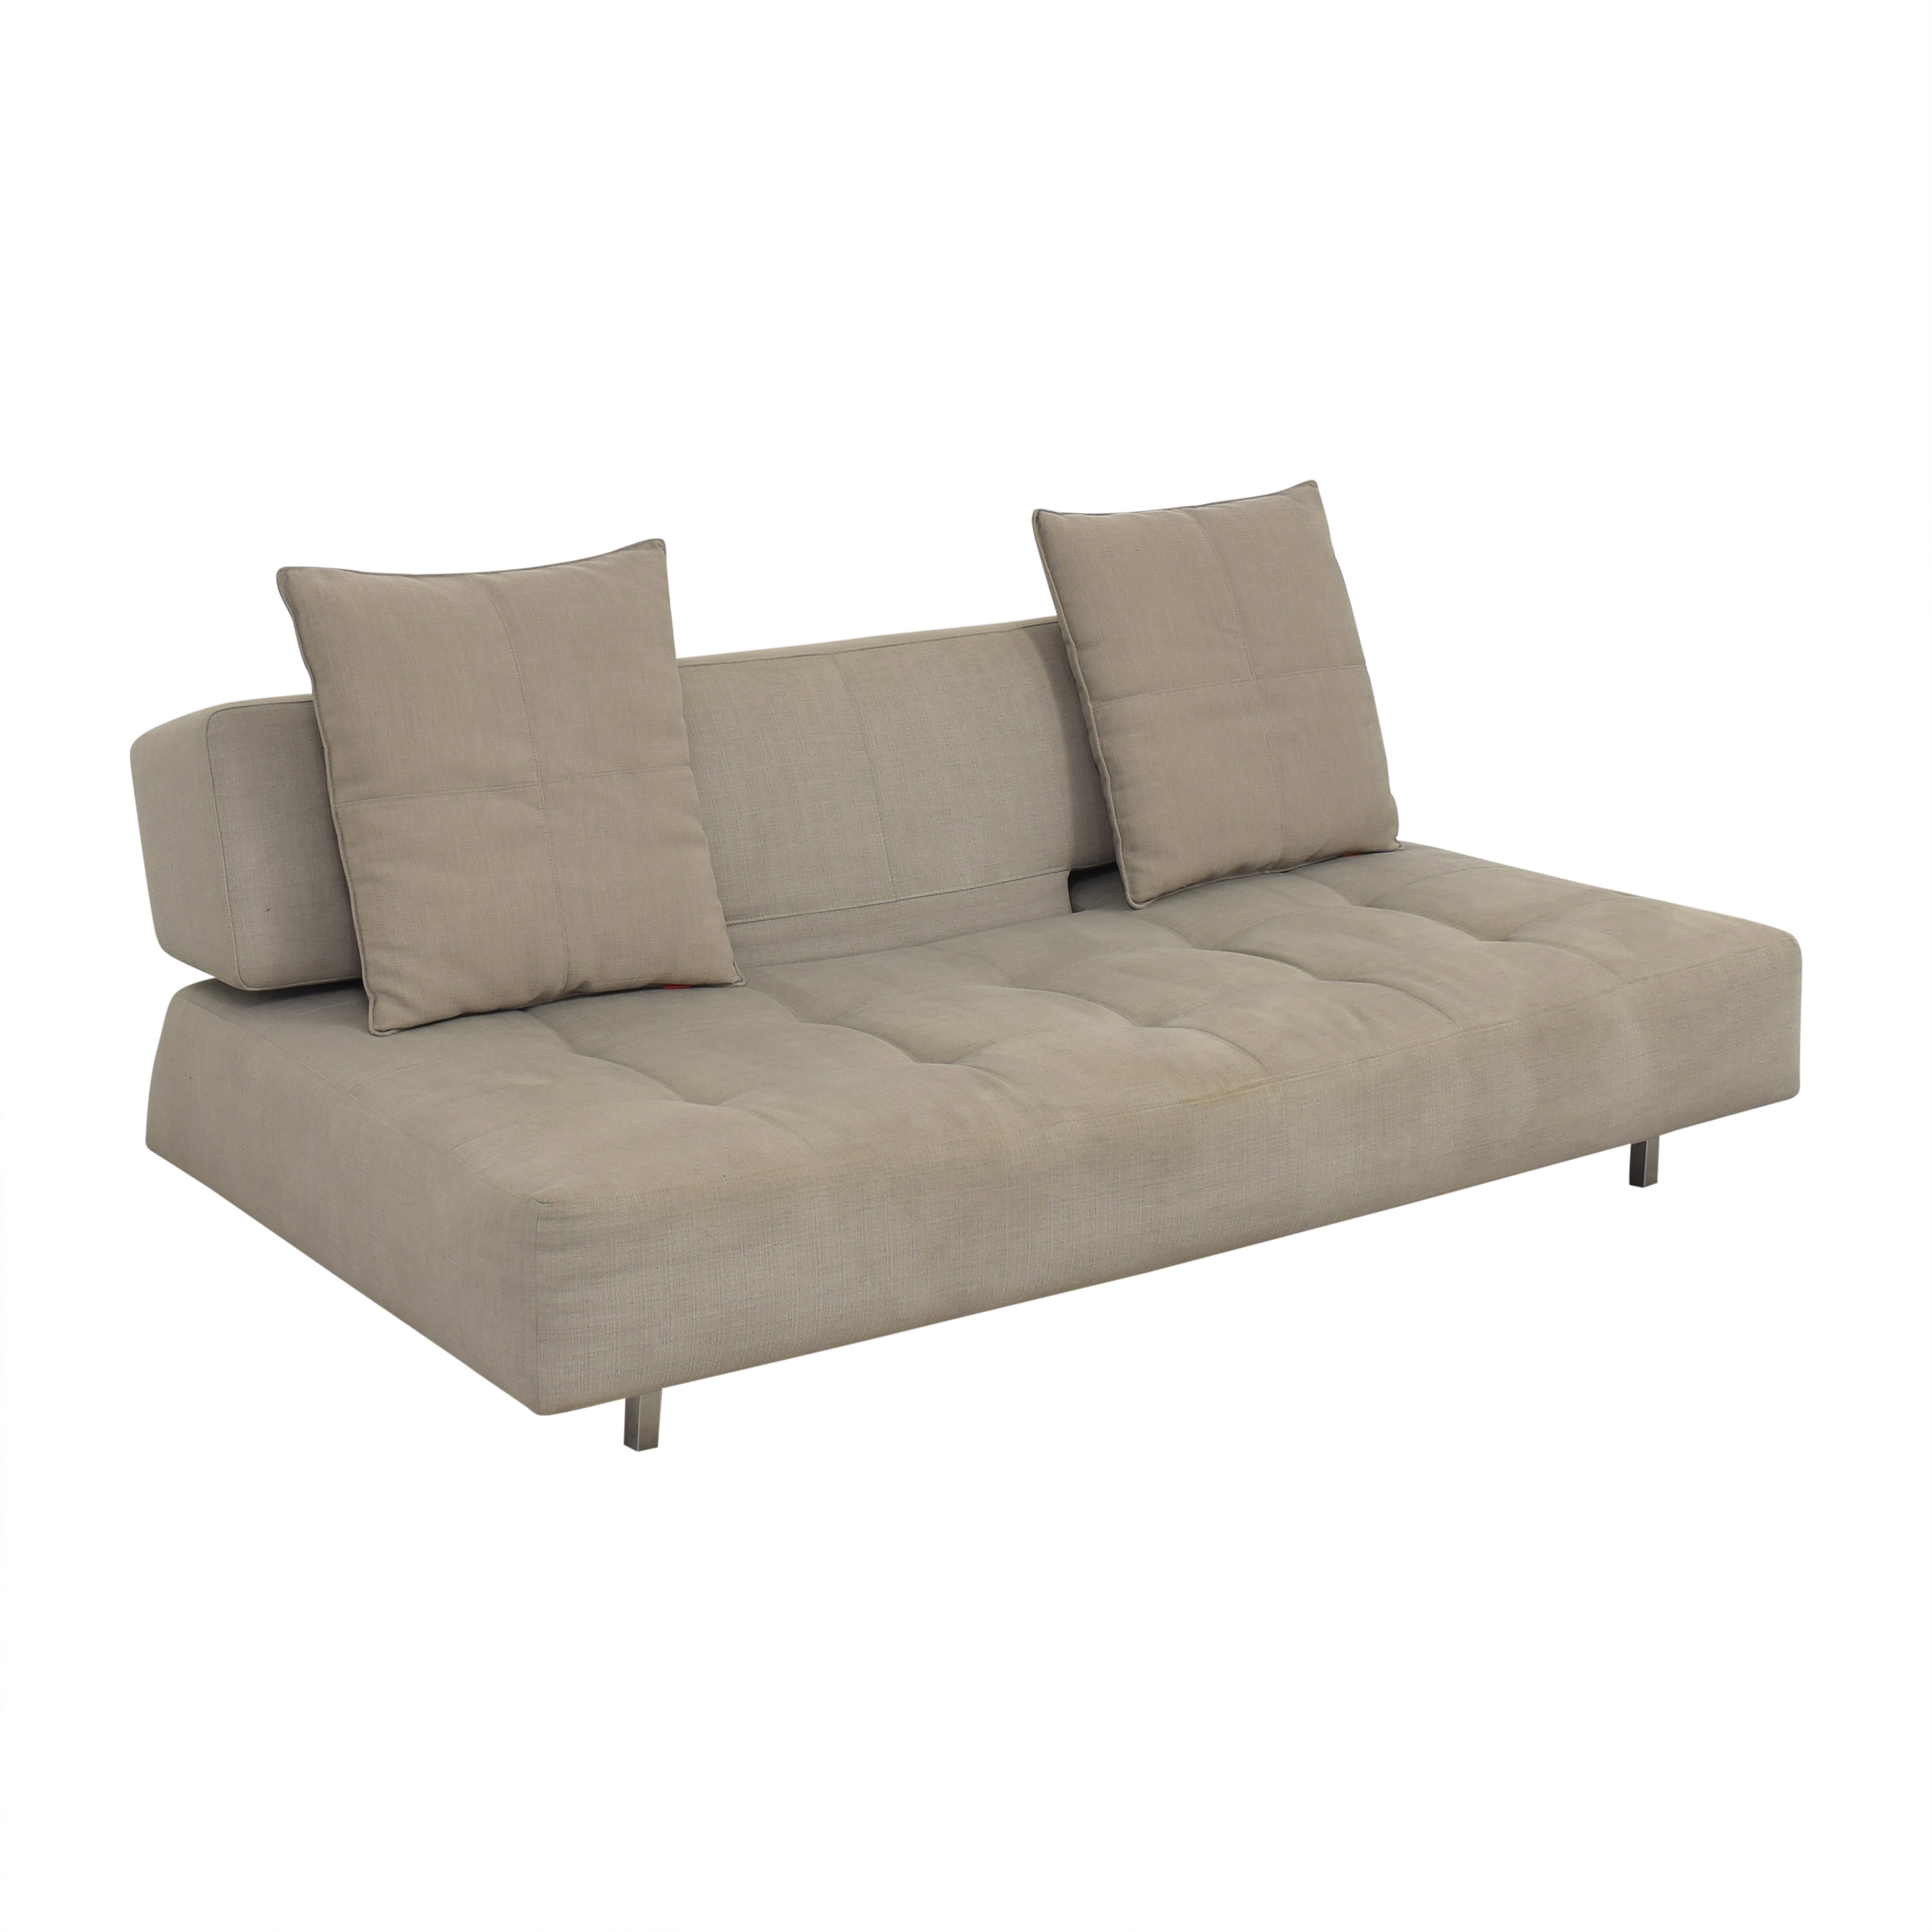 Innovation Living Innovation Living Long Horn Excess Sofa Bed Sofas